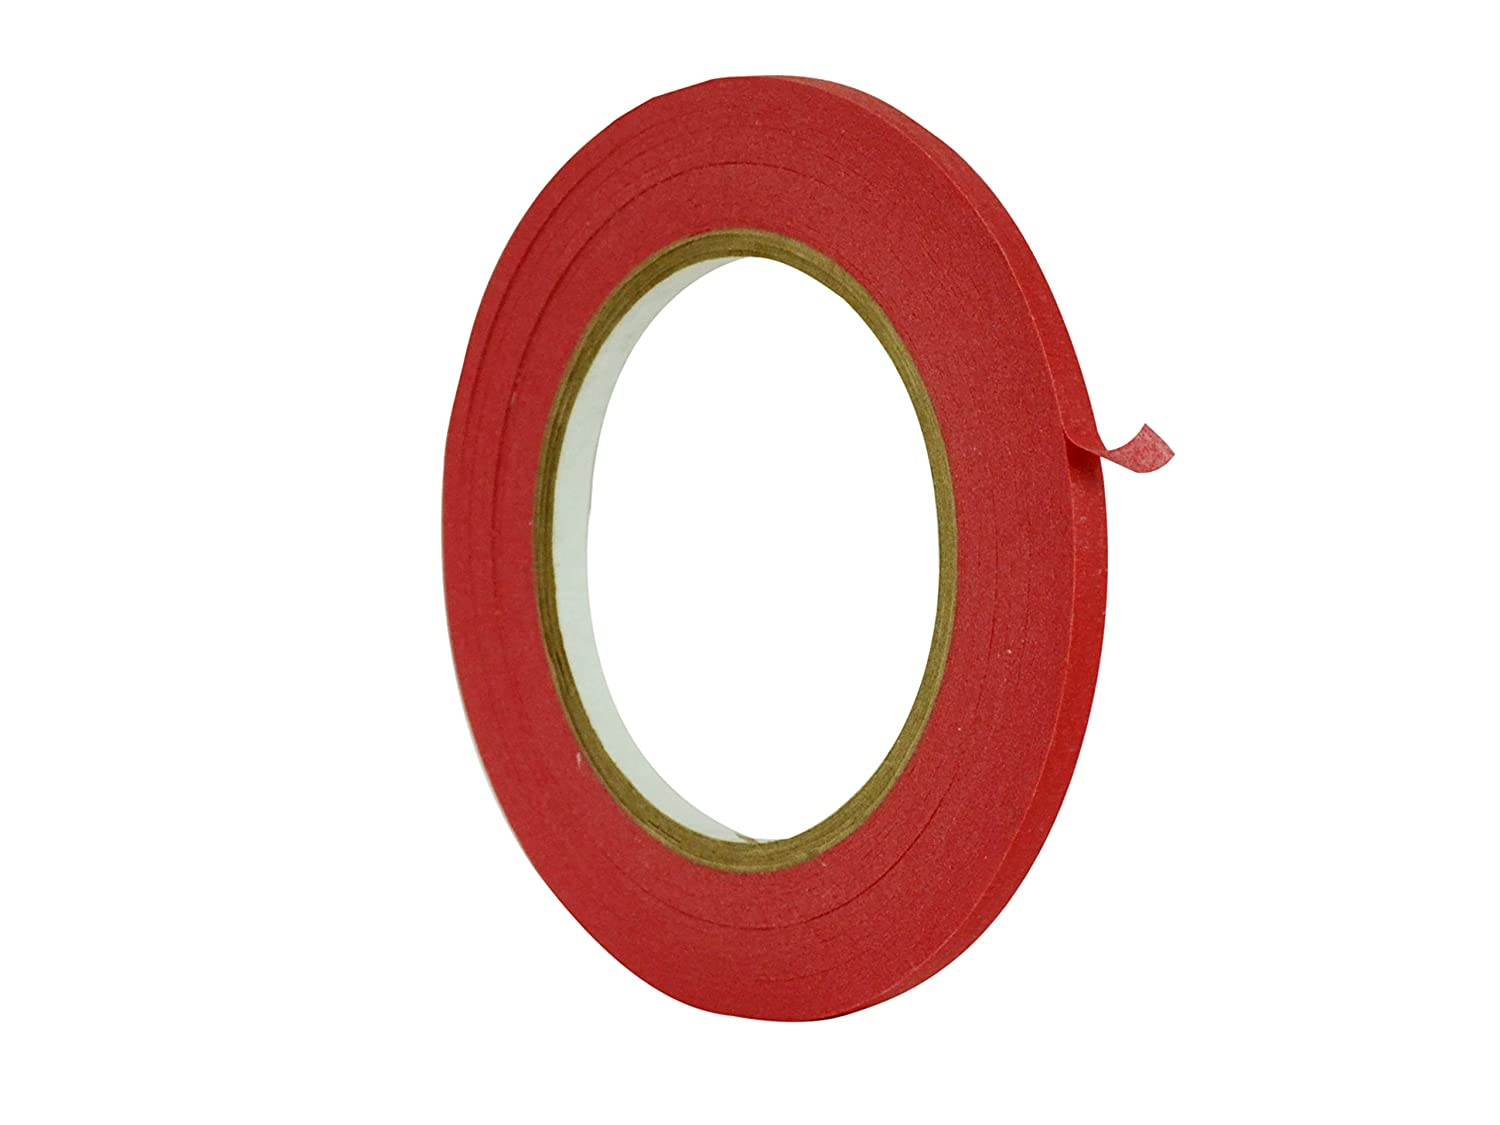 WOD CPM-60 Craft Multi Colored General Purpose Red Masking Tape, for Fun DIY Arts & Crafts, Labeling, Writable & Decorations (Available in Multiple Sizes & Colors): 1/4 in. X 60 Yds (Pack of 1)